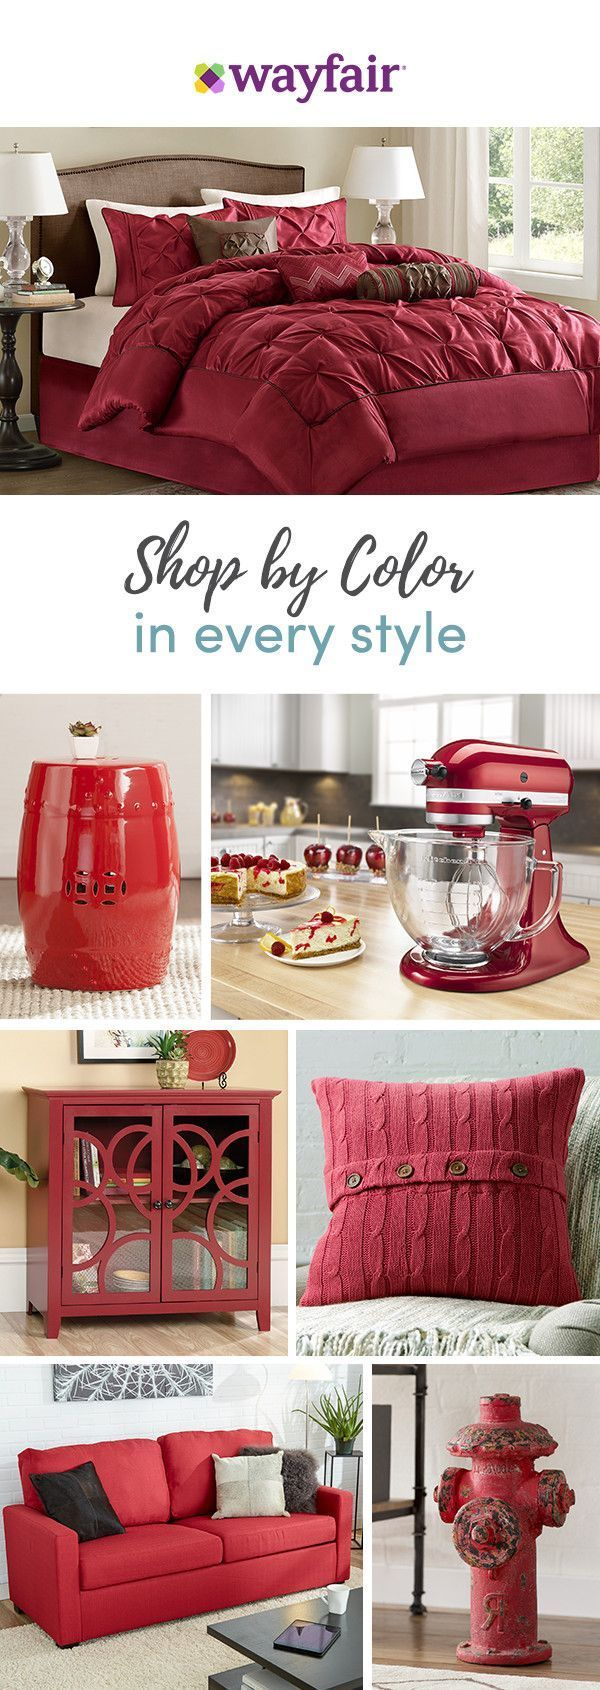 Want a bright and bold accent or a color-pop on the tabletop? From everyday essentials to festive furnishings and more, Wayfair has thousands of home must-haves in shades that suit every style, space, and budget. Visit Wayfair to get exclusive deals at up to 70% OFF, plus FREE shipping on all orders over $49. It's red all over! Sign up and shop now.